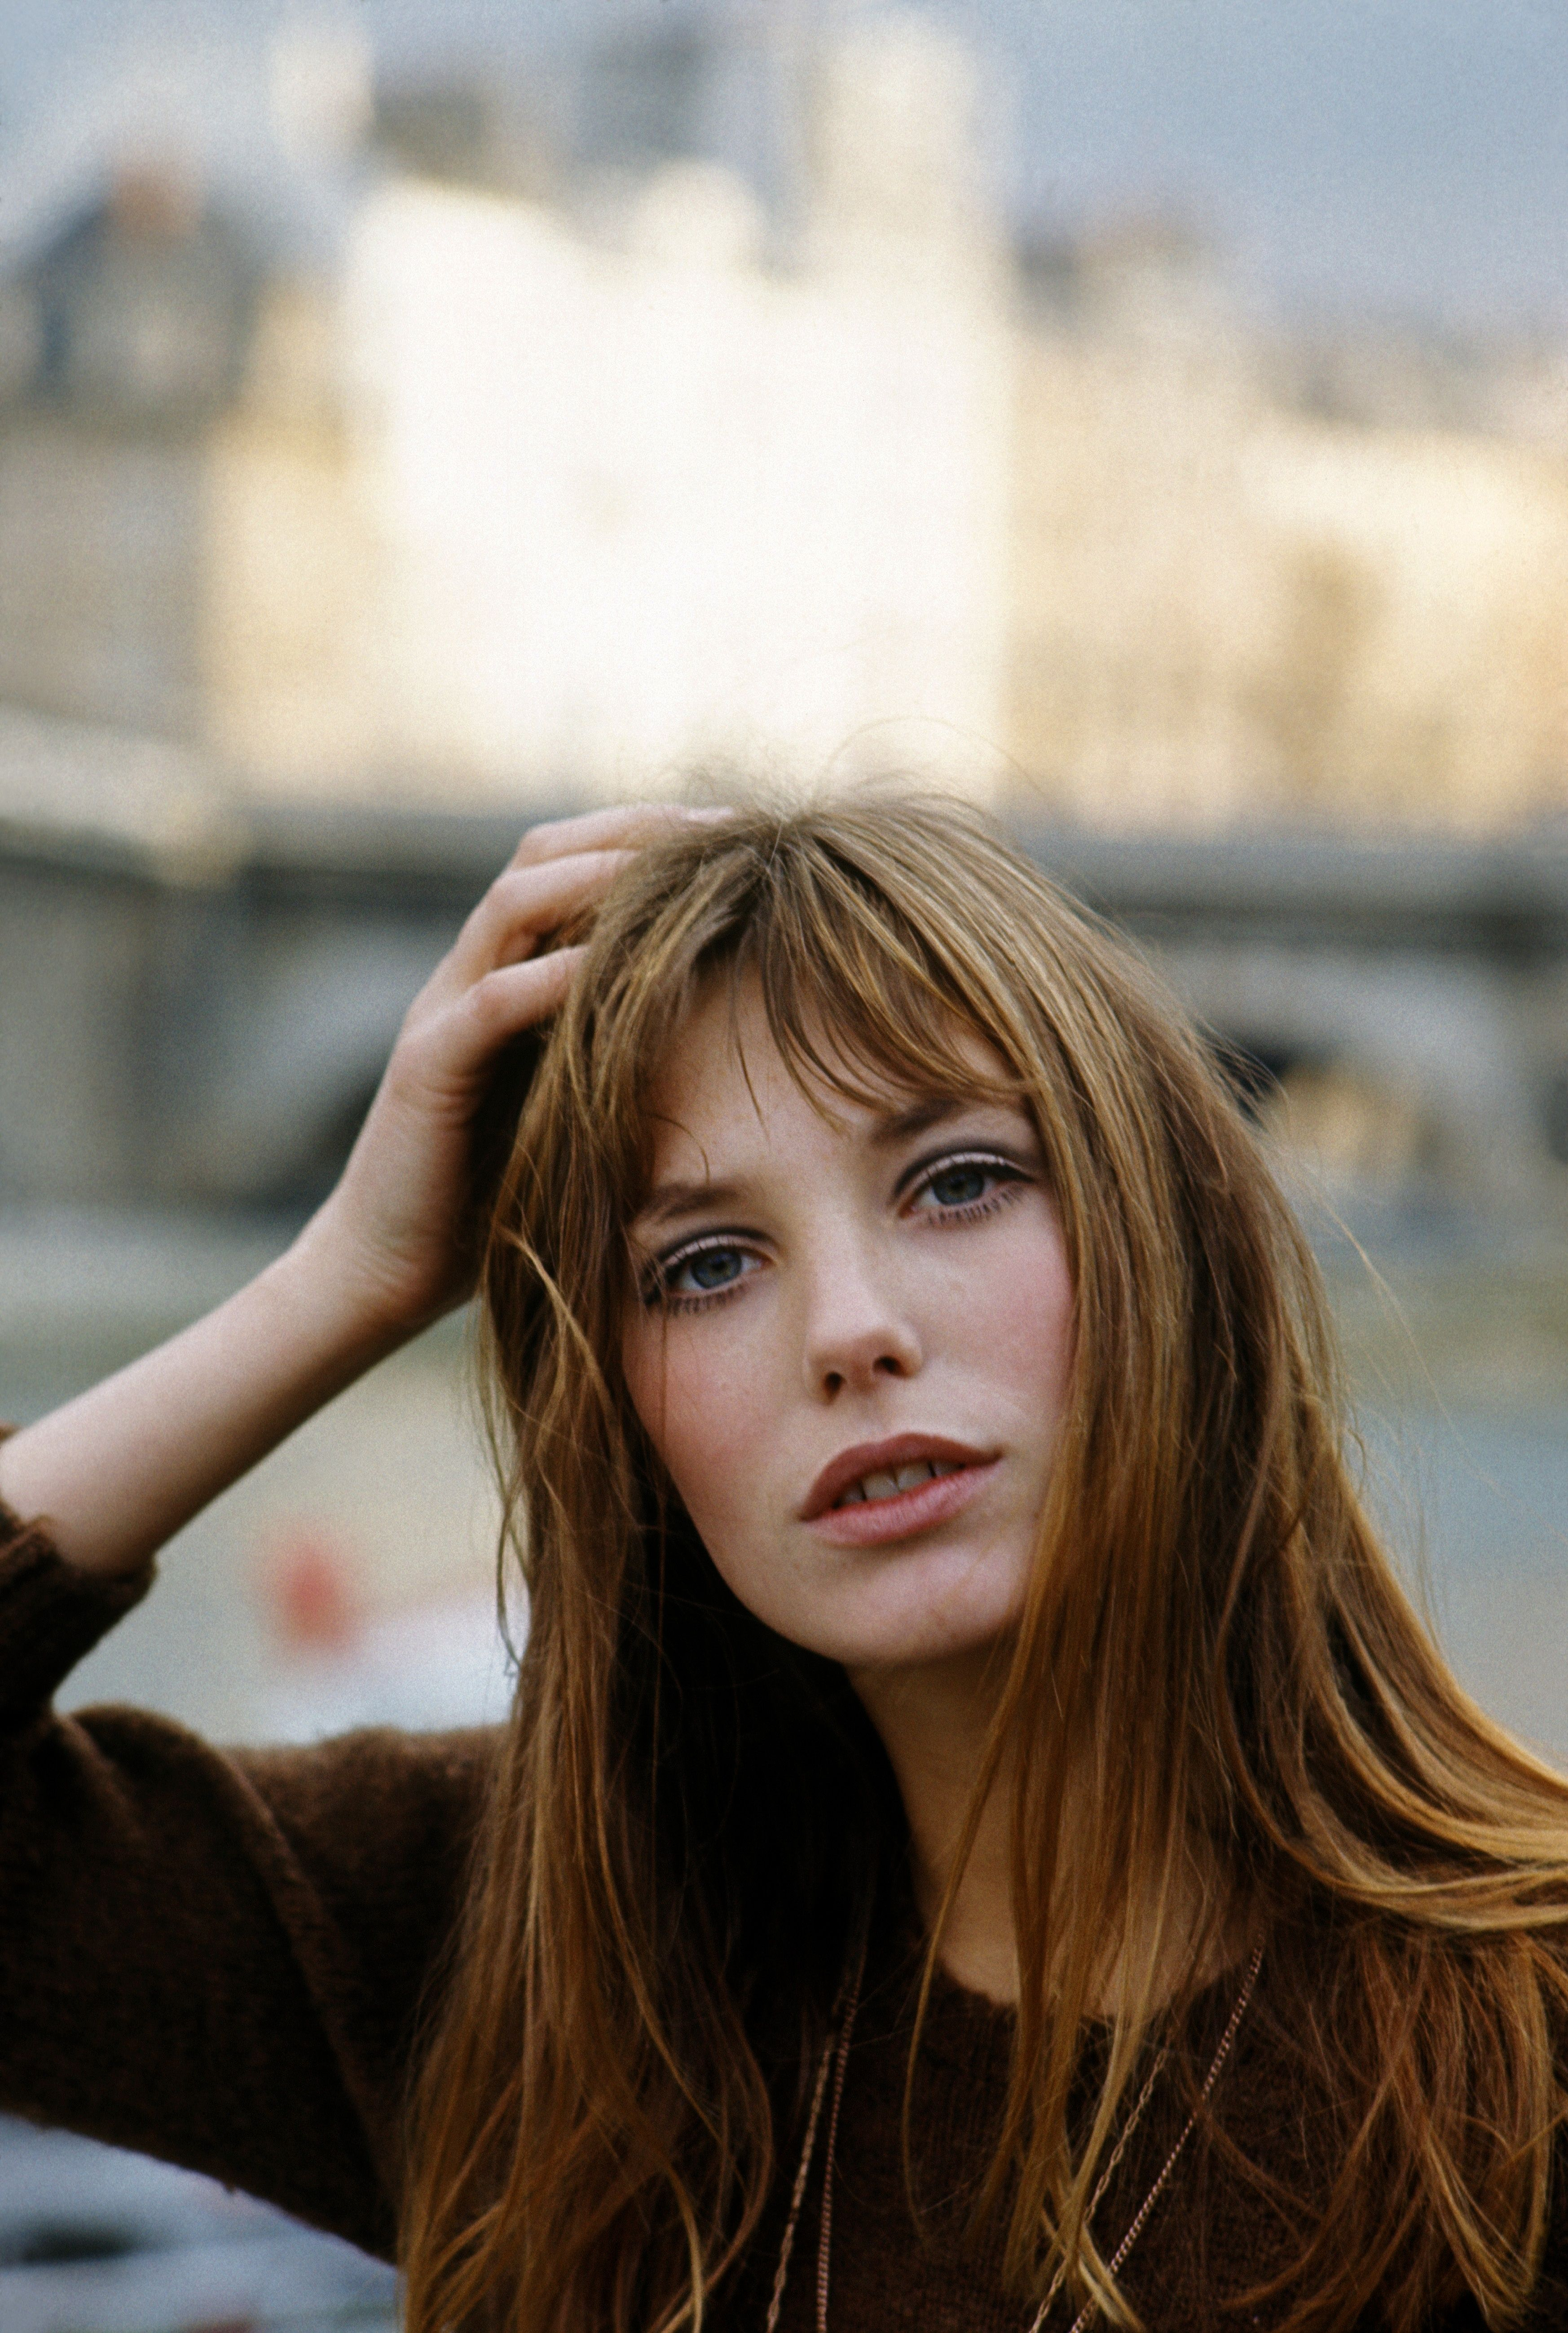 12 French Girl Approved Ways To Cut Your Bangs